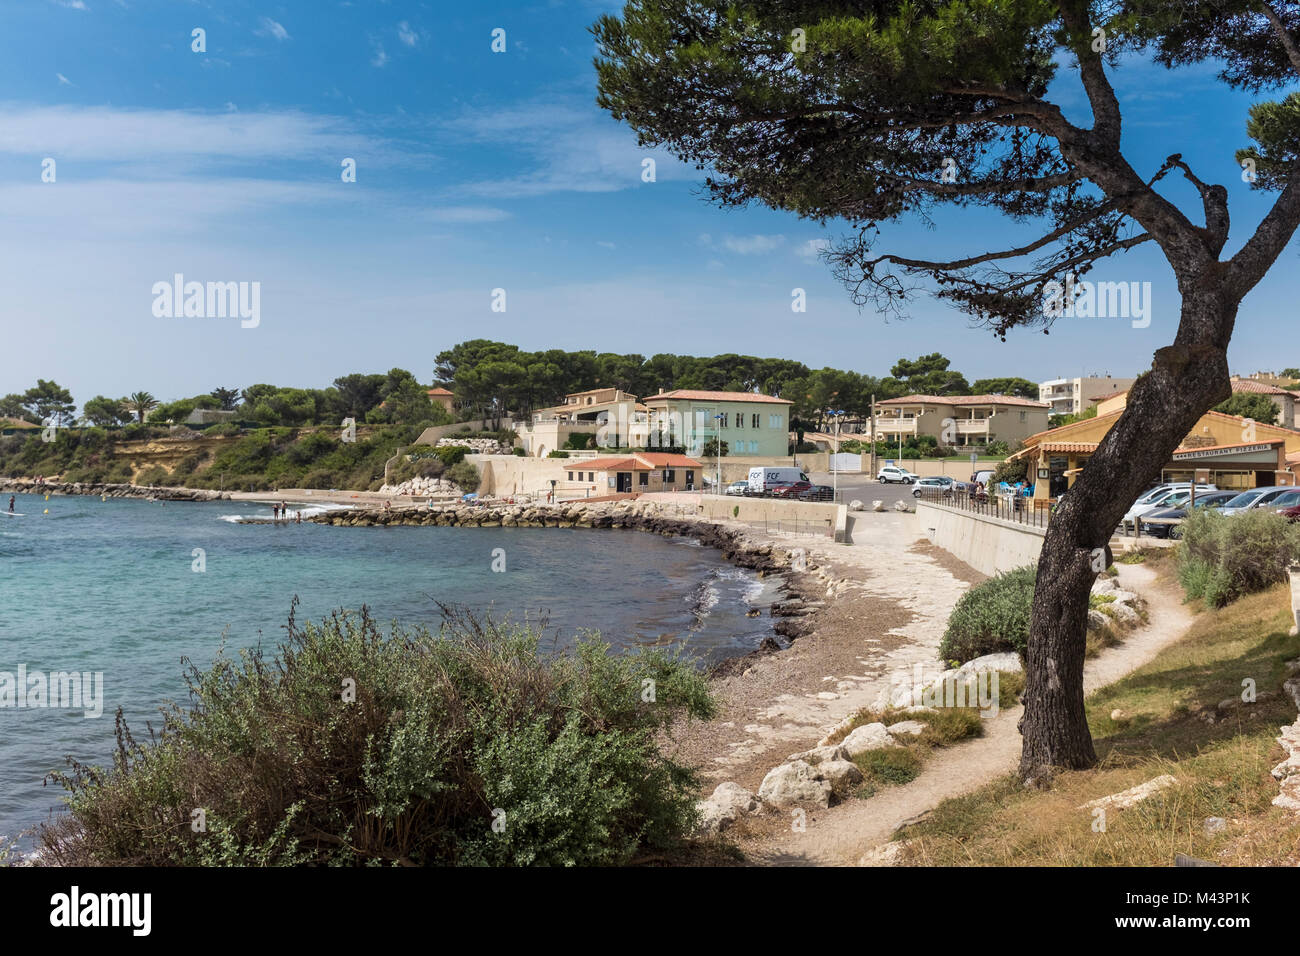 One of the beaches around Carry le Rouet, Bouches du Rhone, PACA, France - Stock Image